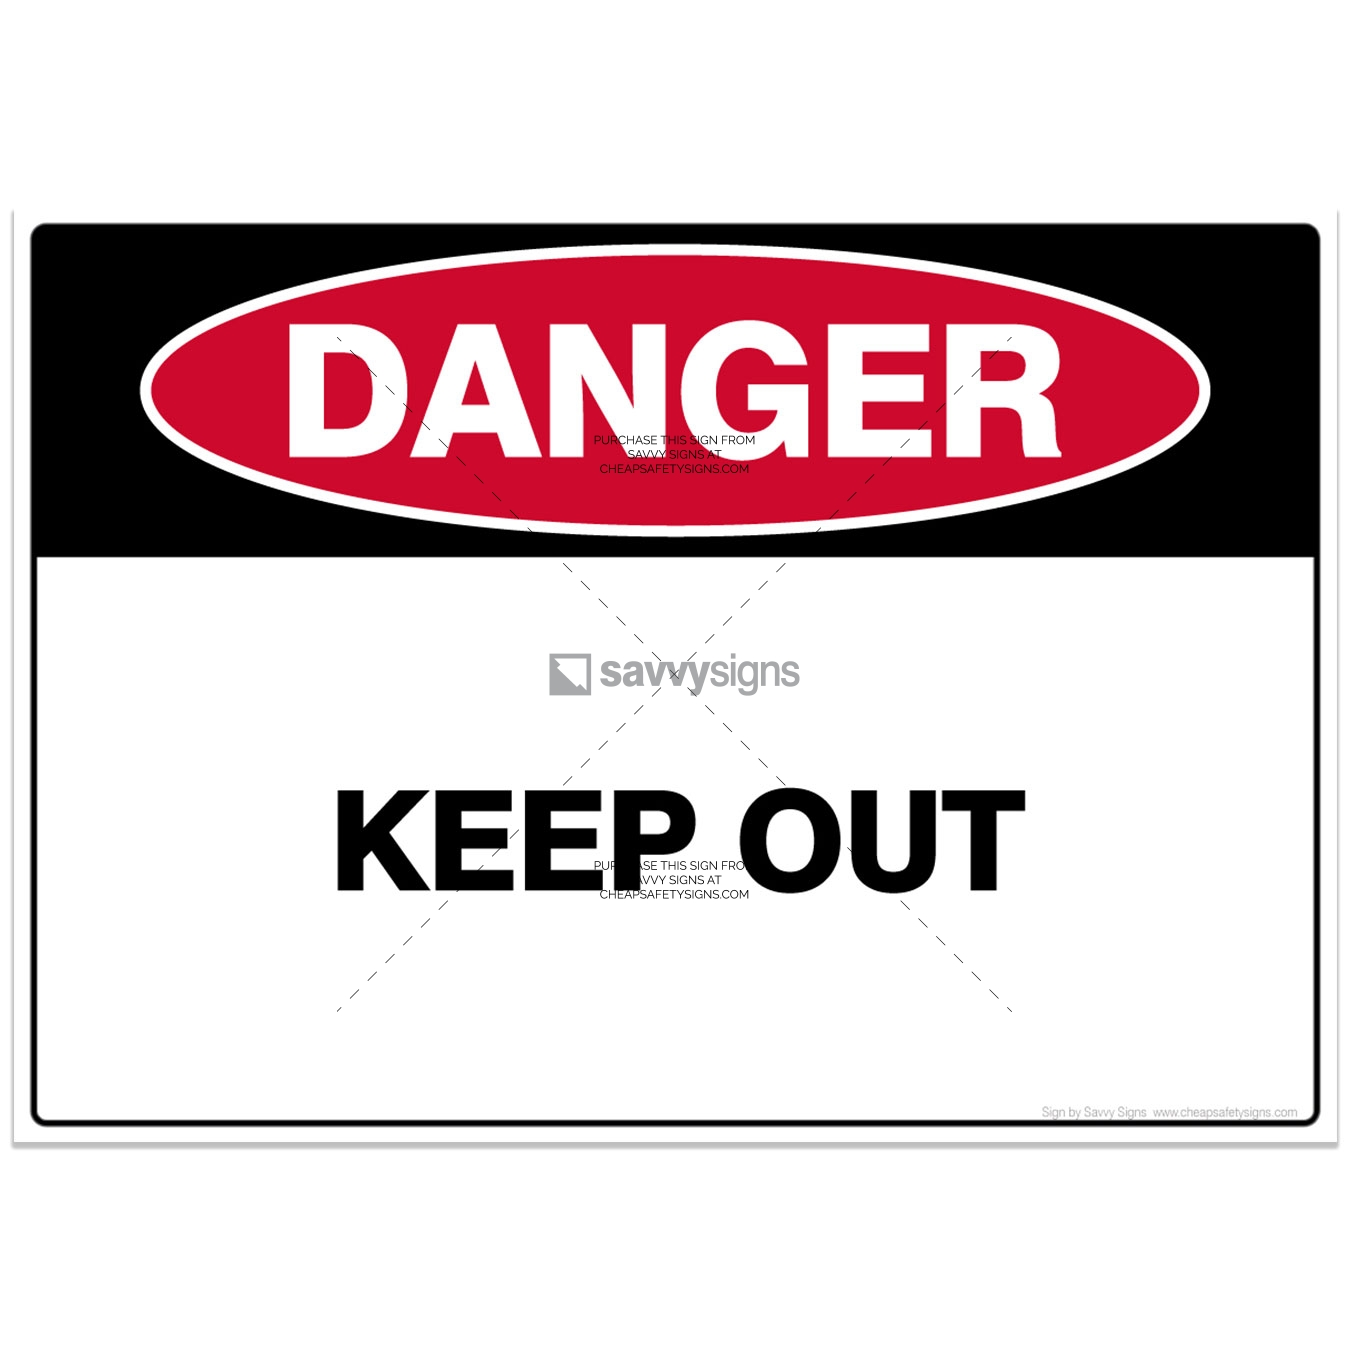 SSDAN3054-DANGER-Workplace-Safety-Signs_Savvy-Signs_v4.1